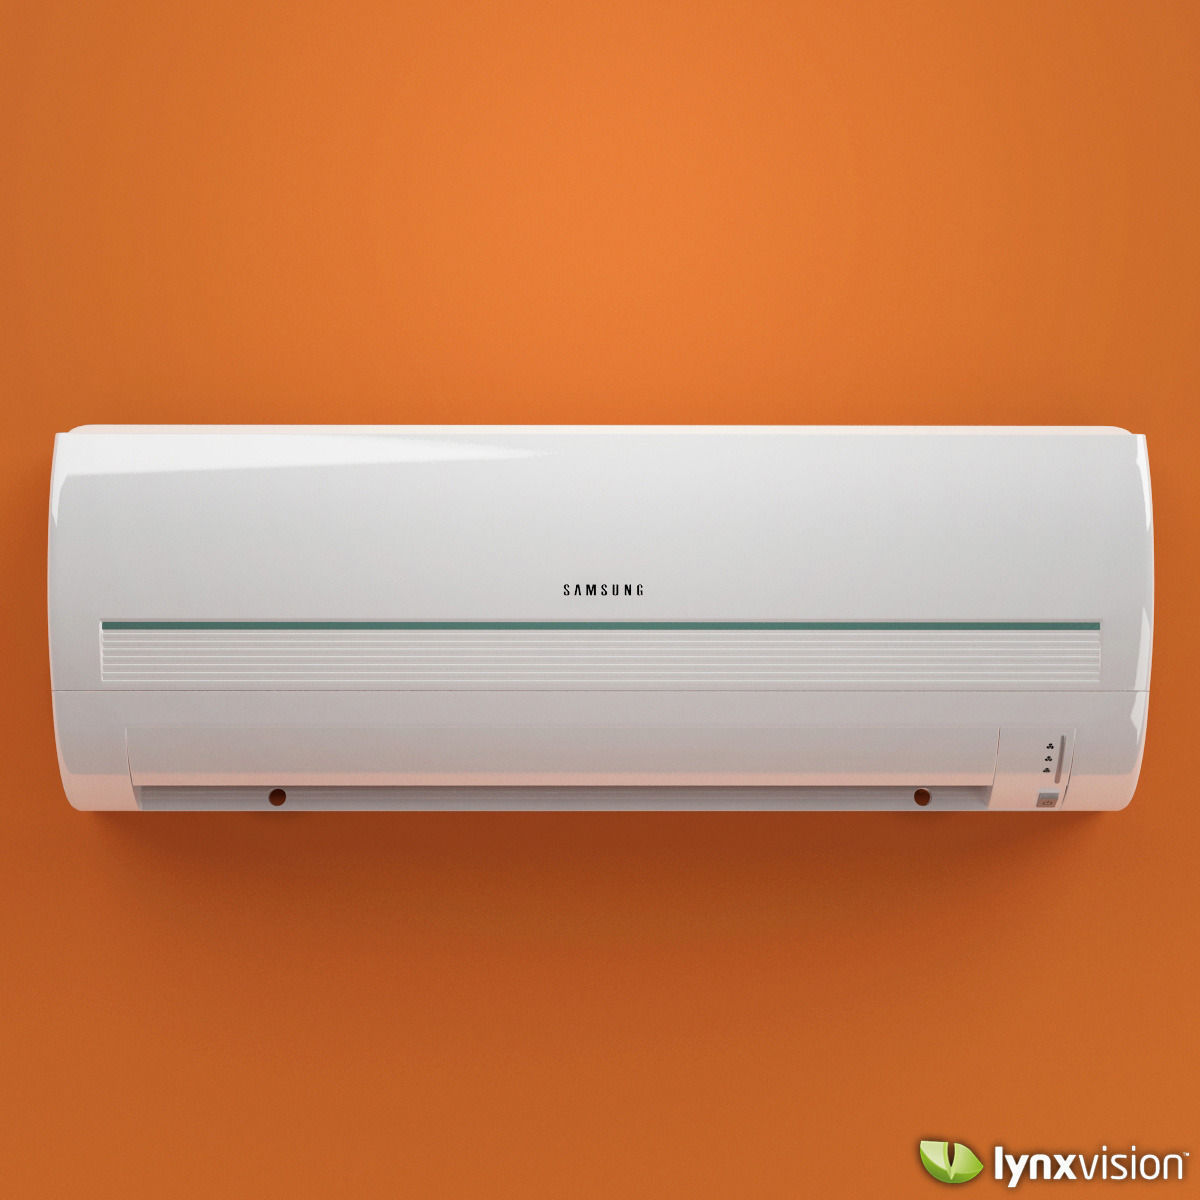 #9C461A Samsung Split Air Conditioner 3D Model MAX OBJ FBX C4D  Reliable 13938 Samsung Window Air Conditioner Parts wallpaper with 1200x1200 px on helpvideos.info - Air Conditioners, Air Coolers and more